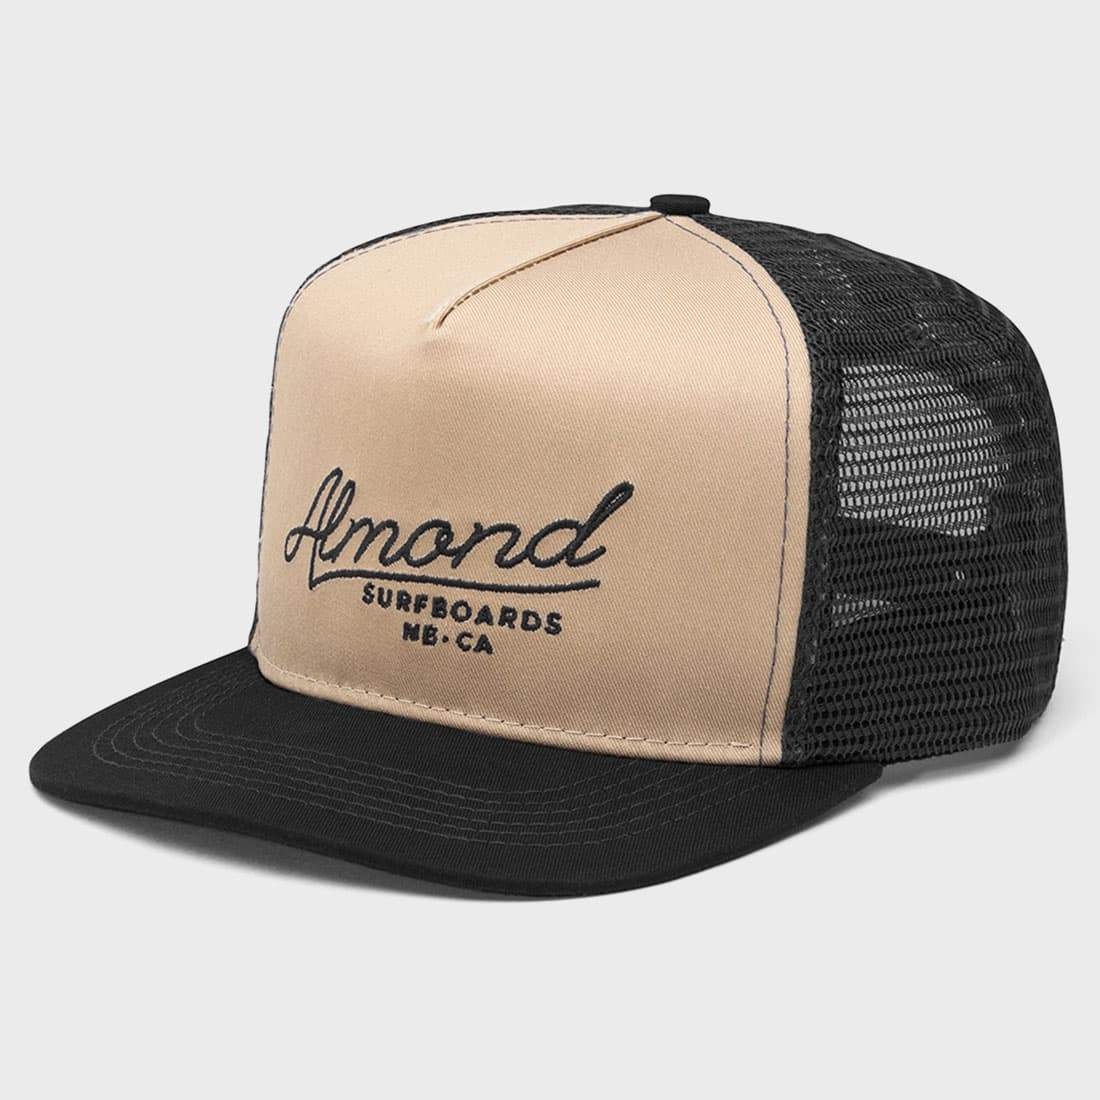 Almond Surfboards Trekker Hat Brown